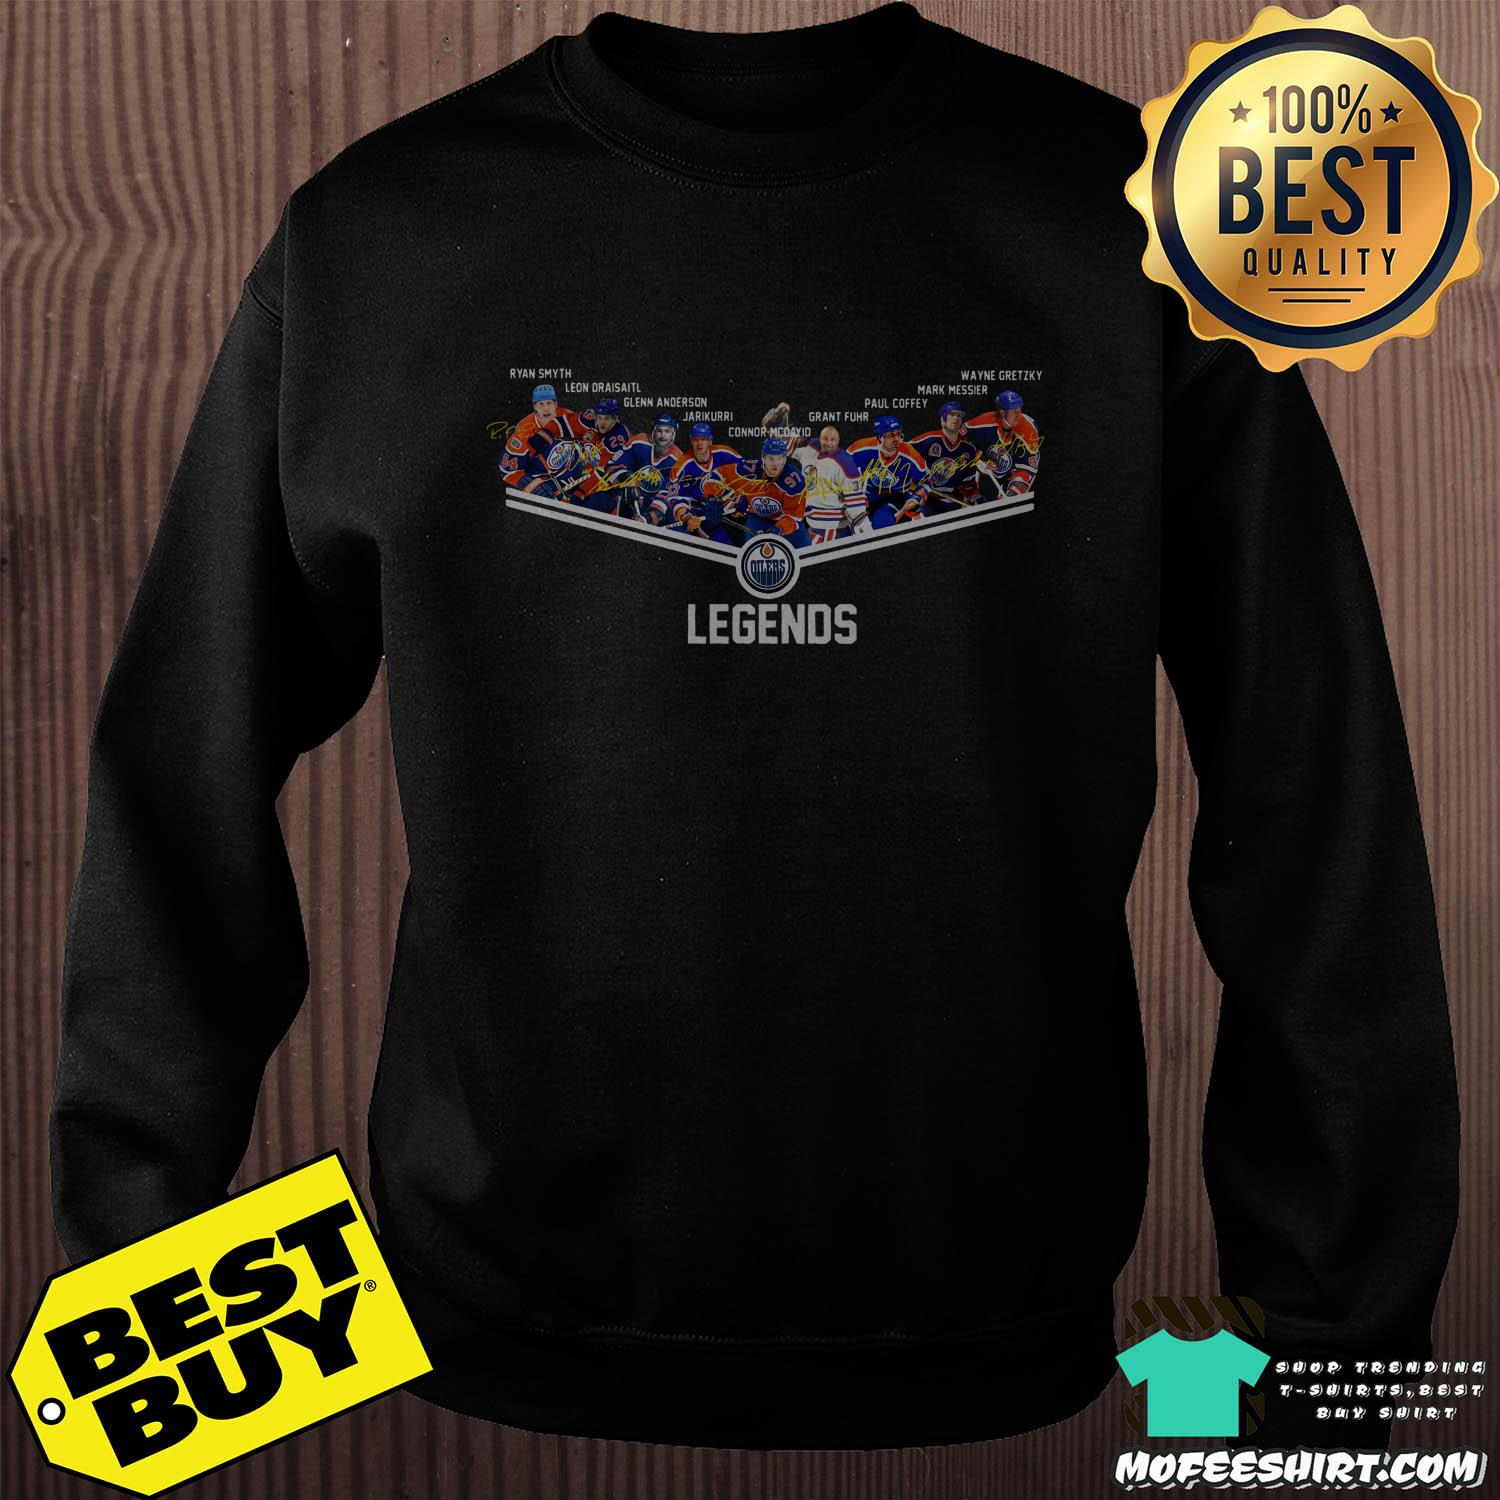 edmonton oilers legend all players signatures sweatshirt - Edmonton Oilers legend all players signatures shirt